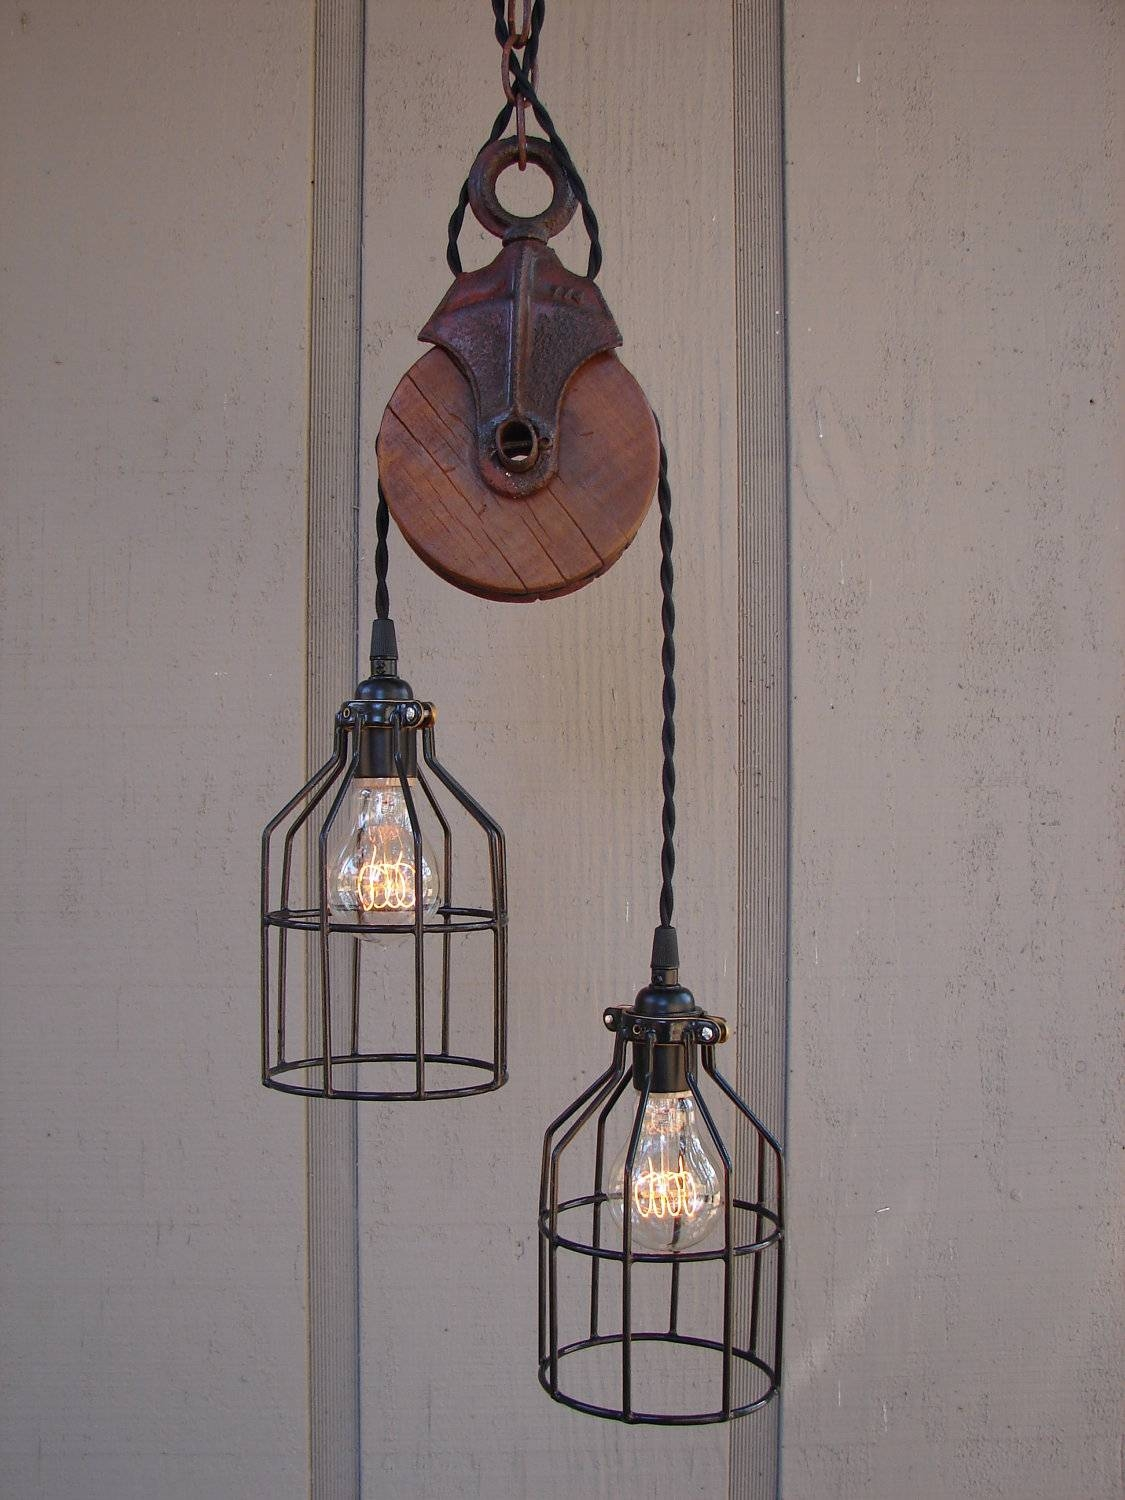 Pulley Pendant Light - Hbwonong with Pulley Pendant Lights (Image 14 of 15)